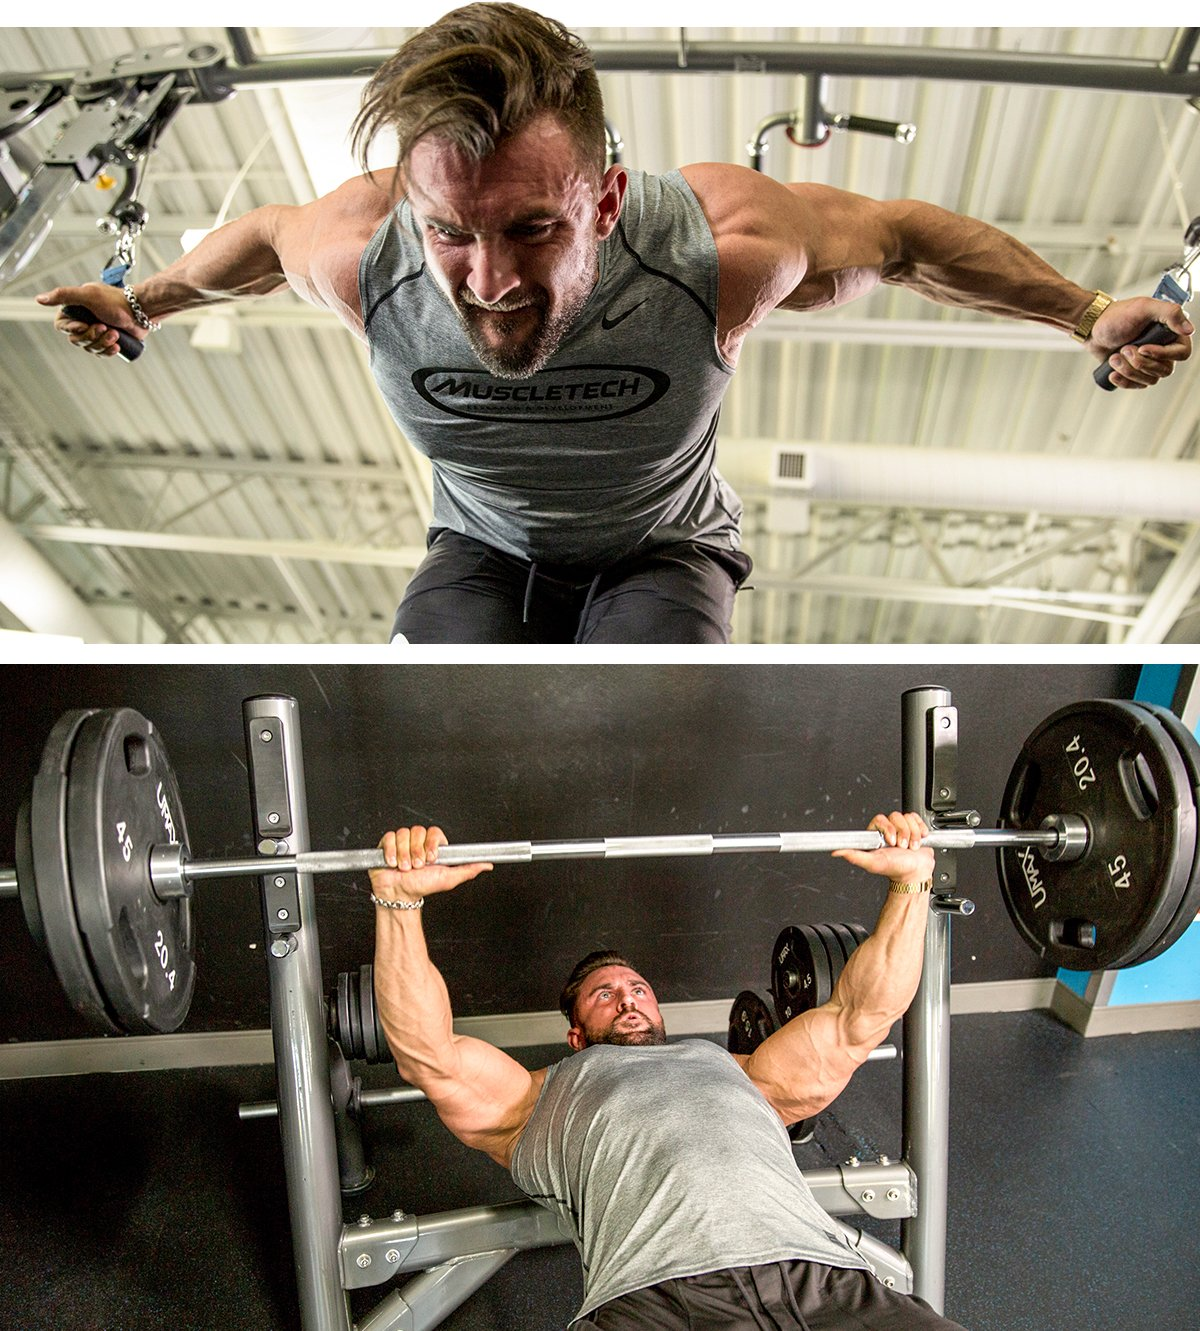 Bent-Over Cable Fly and Bench Press